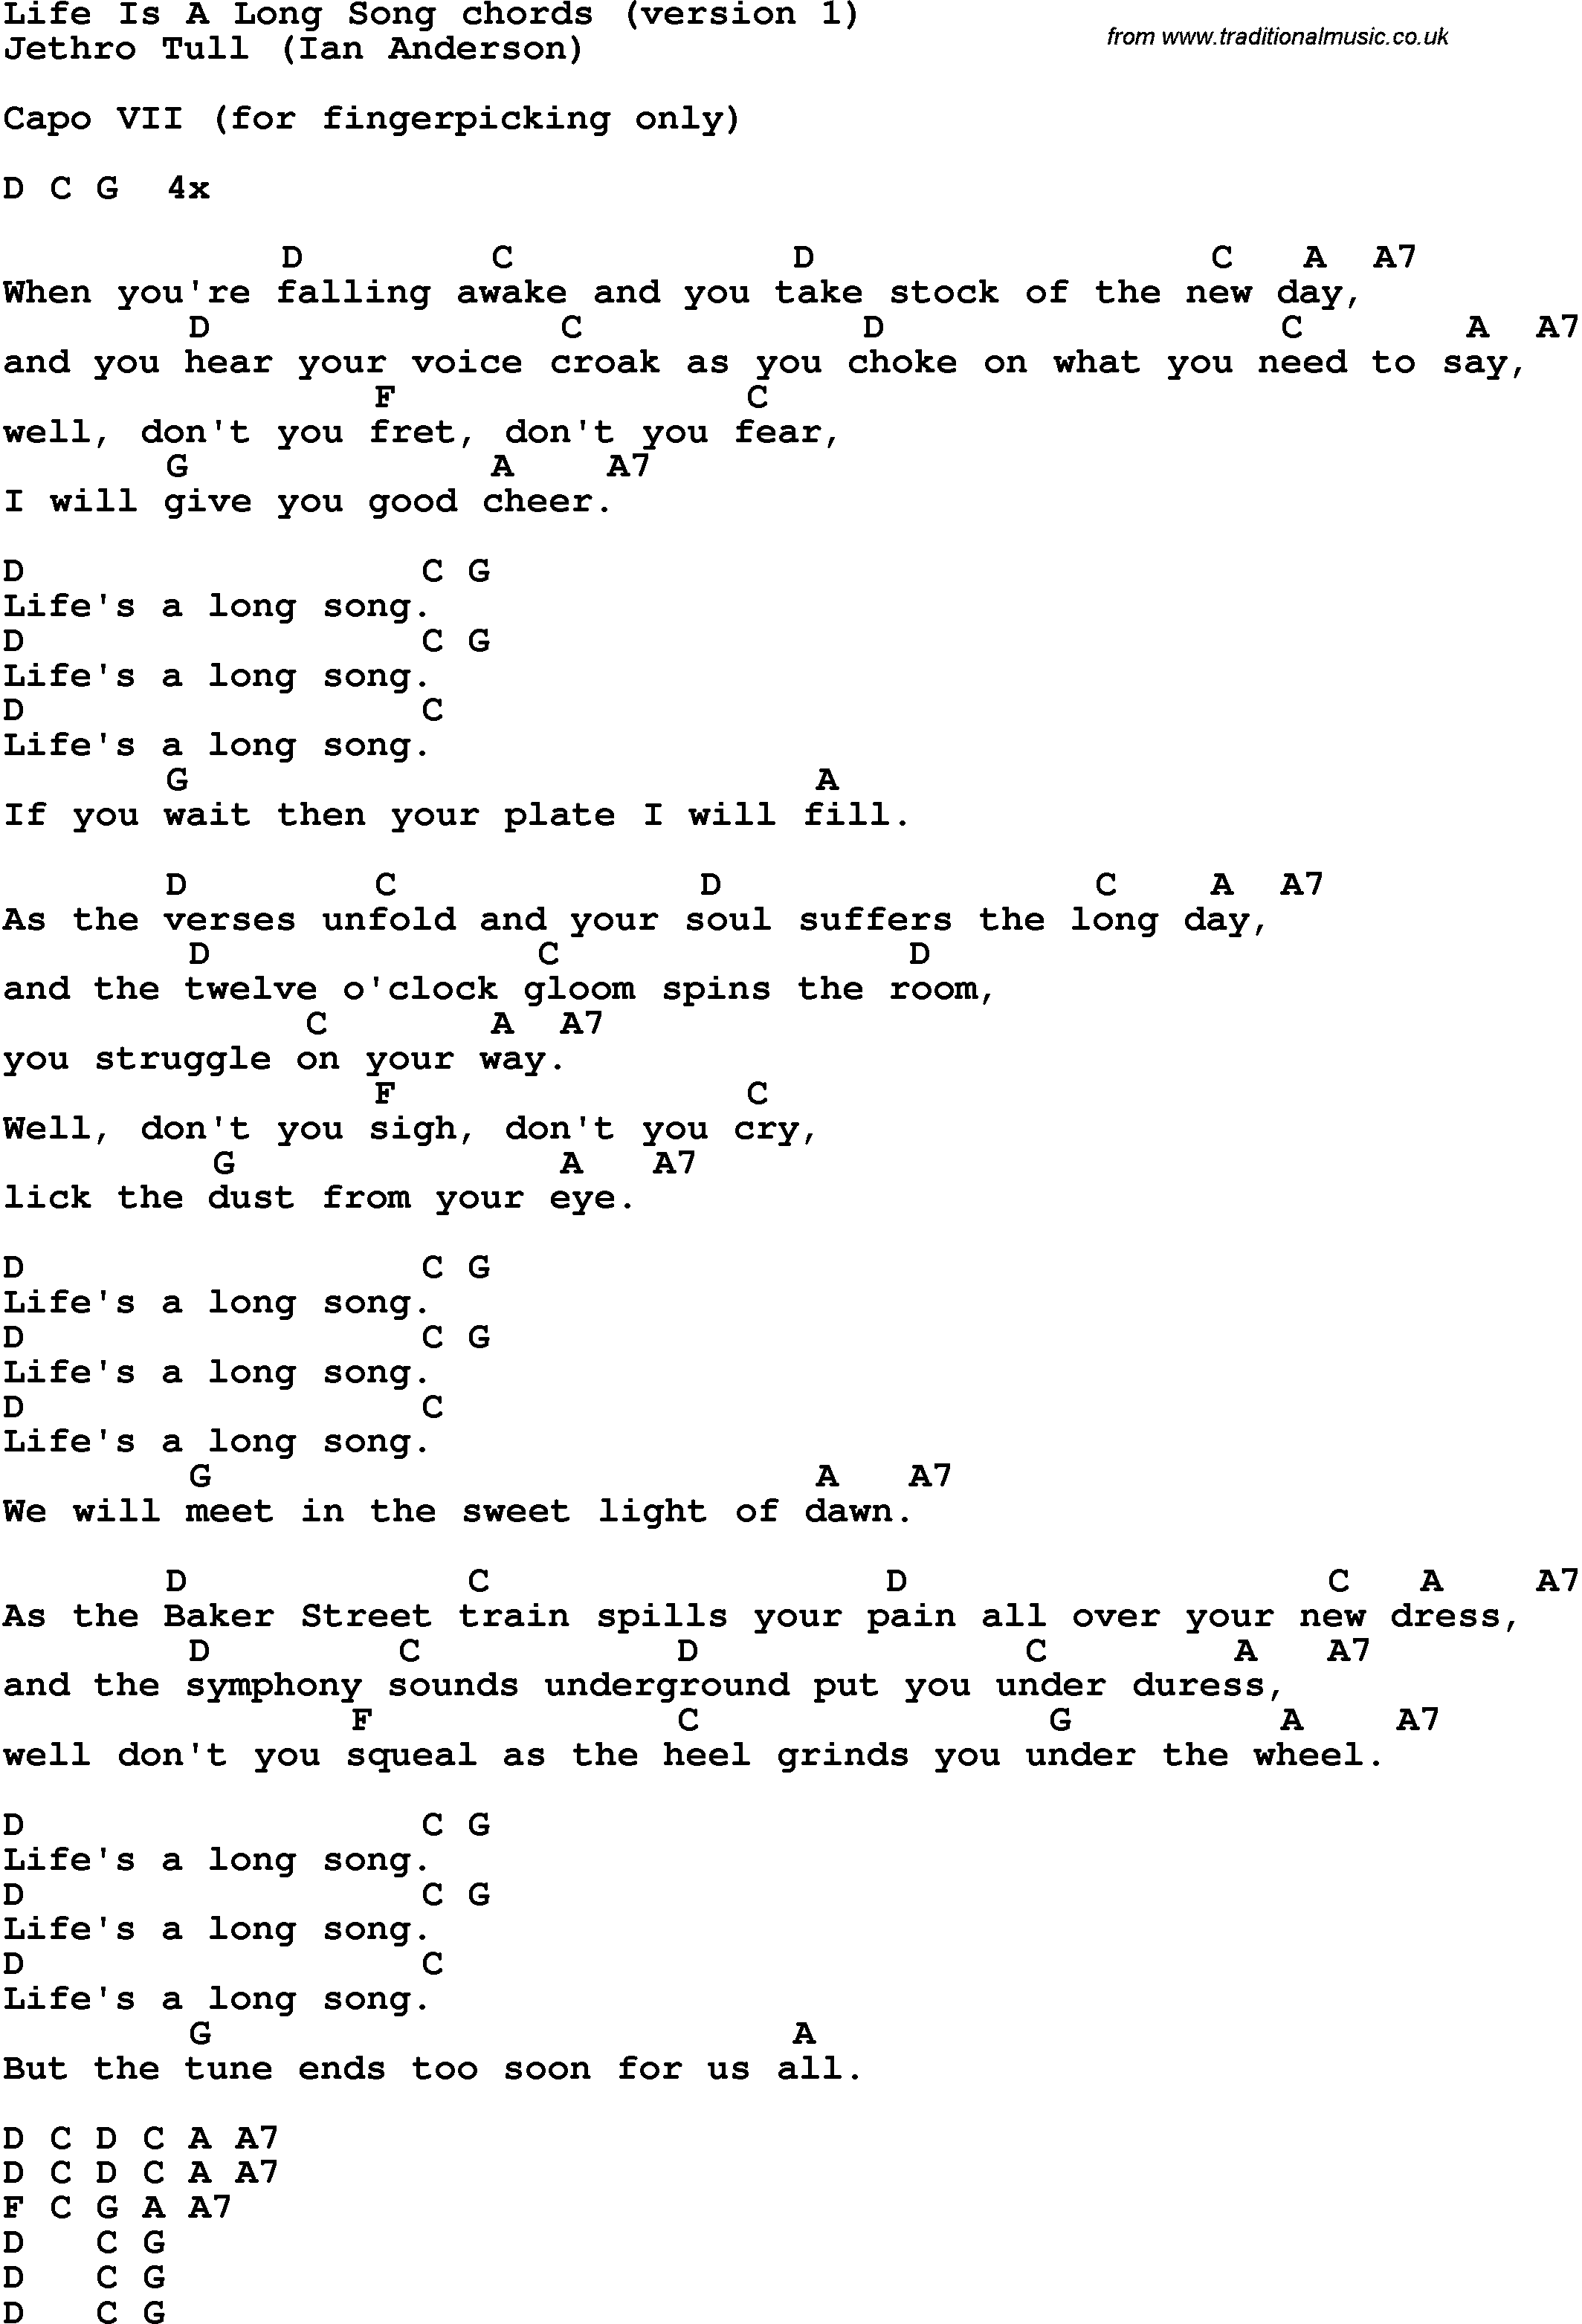 Song Lyrics With Guitar Chords For Life Is A Long Song